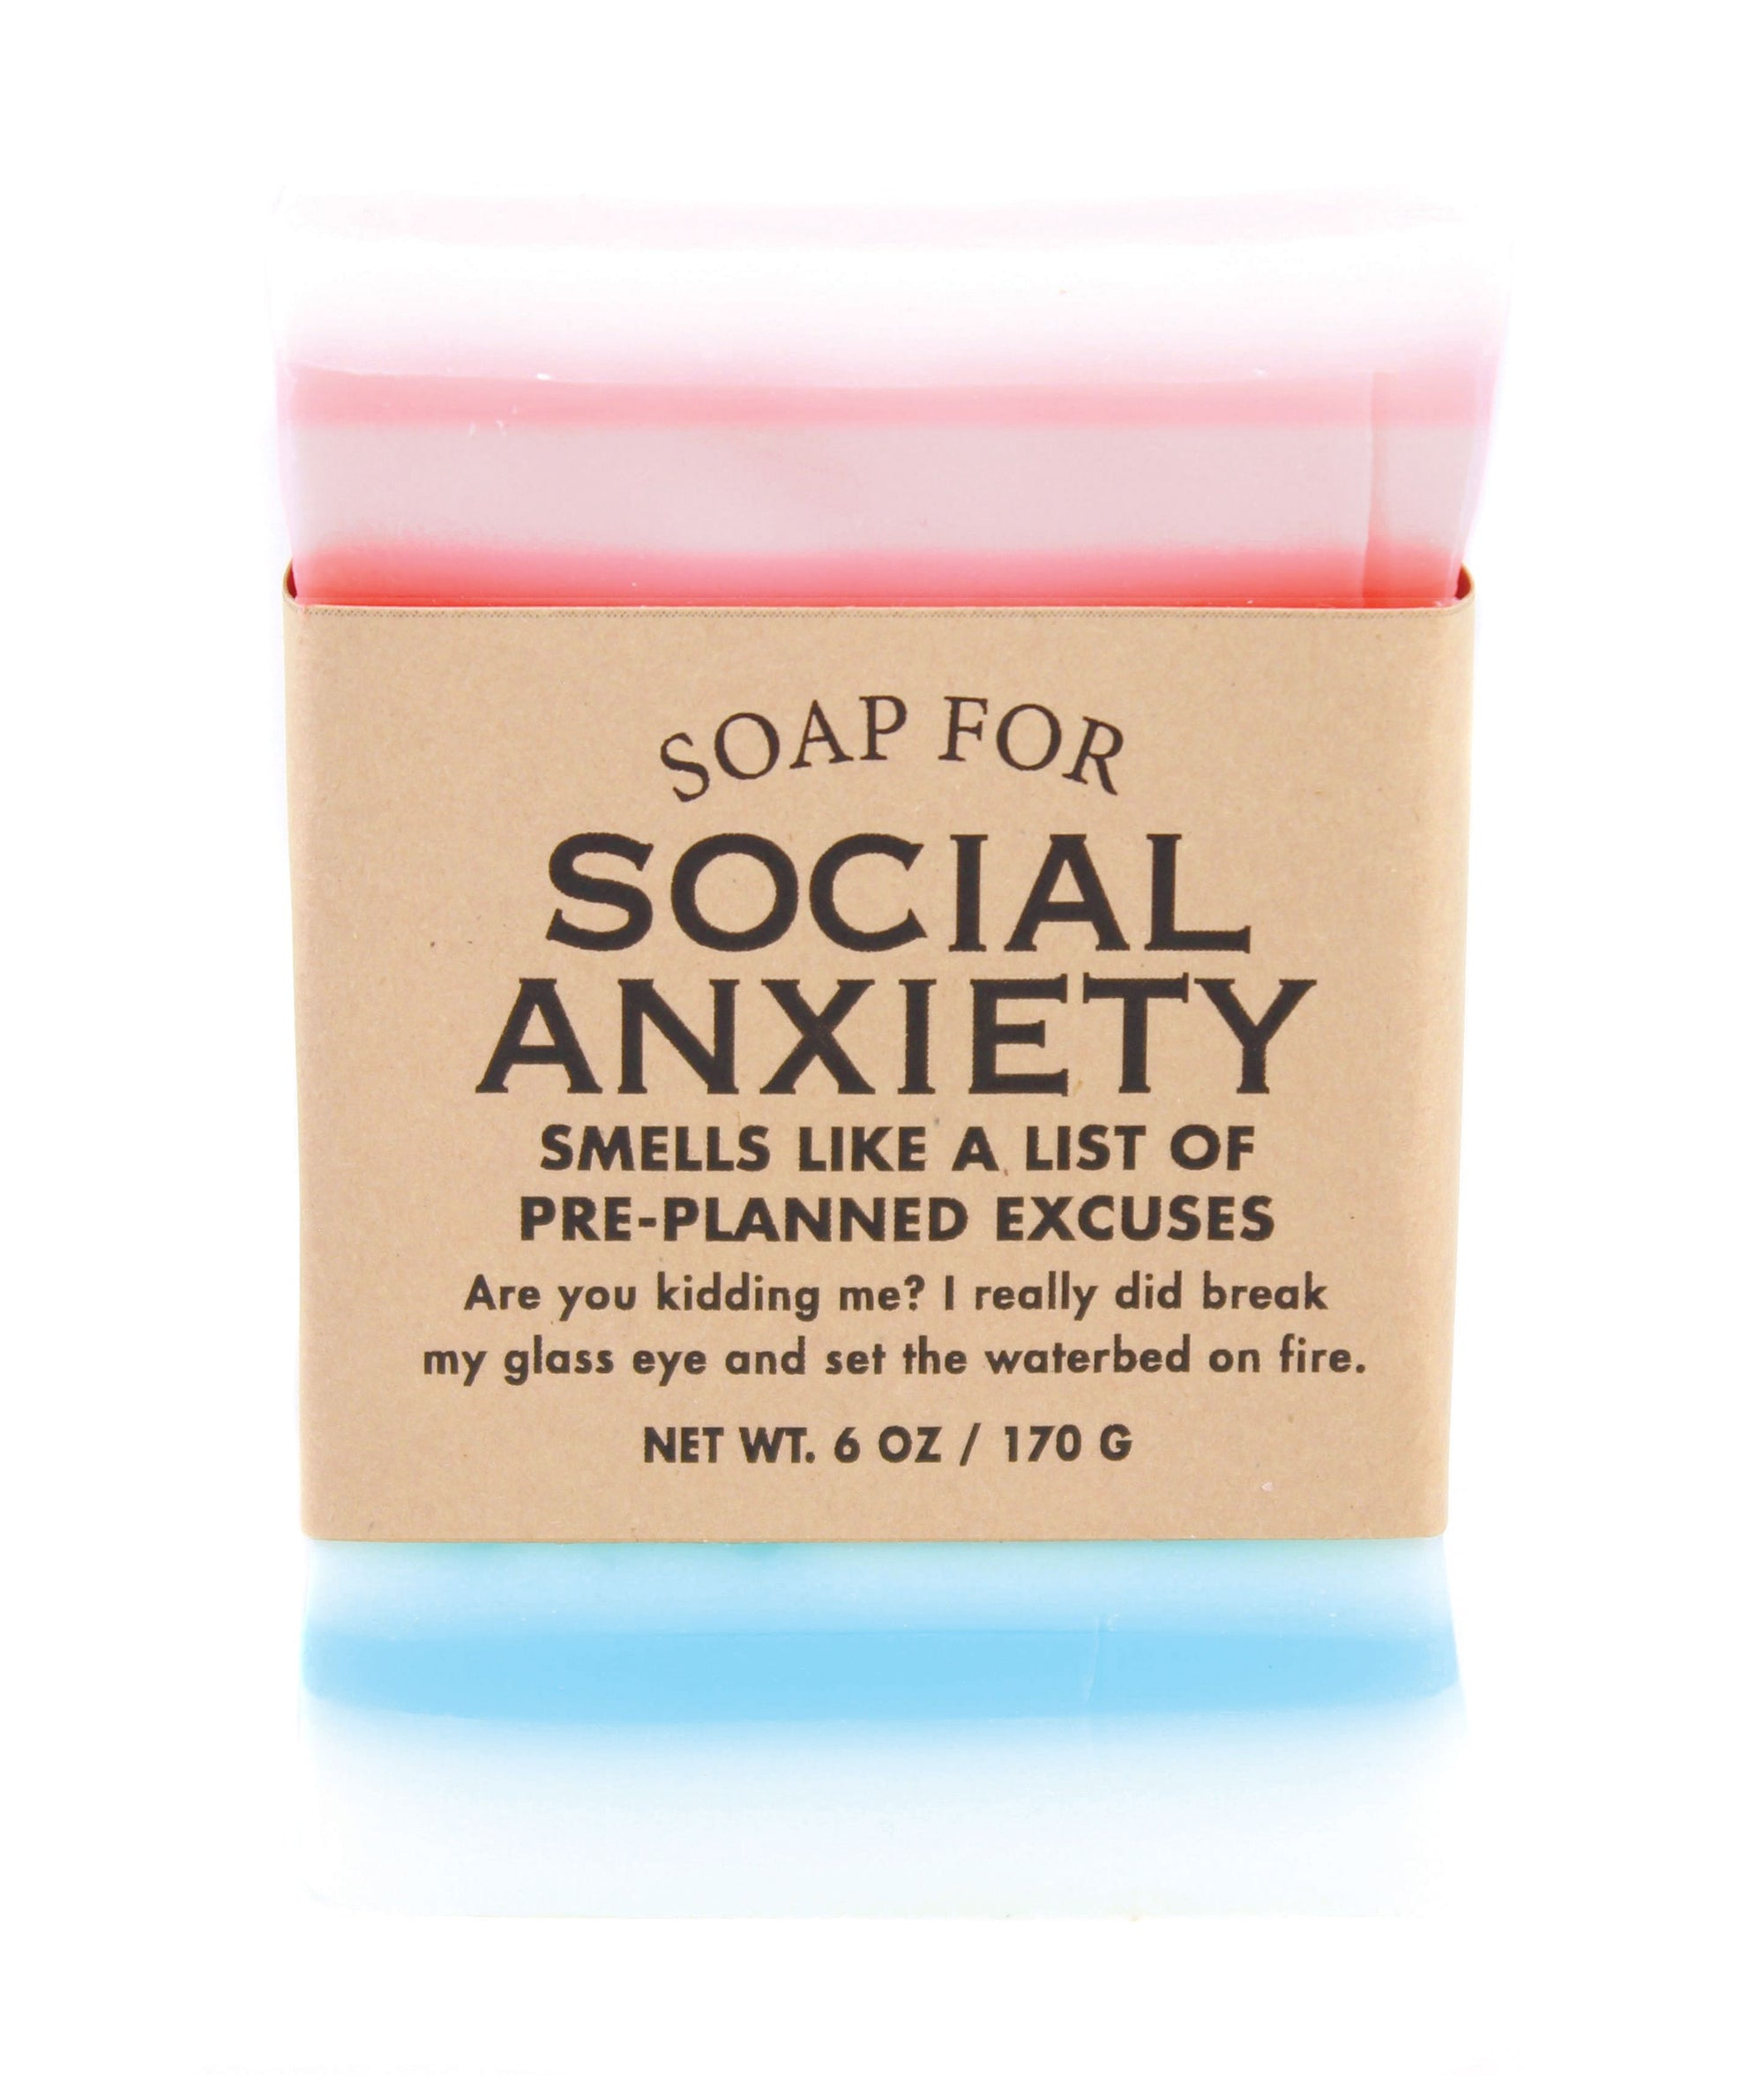 Soap for Social Anxiety - Heart of the Home PA